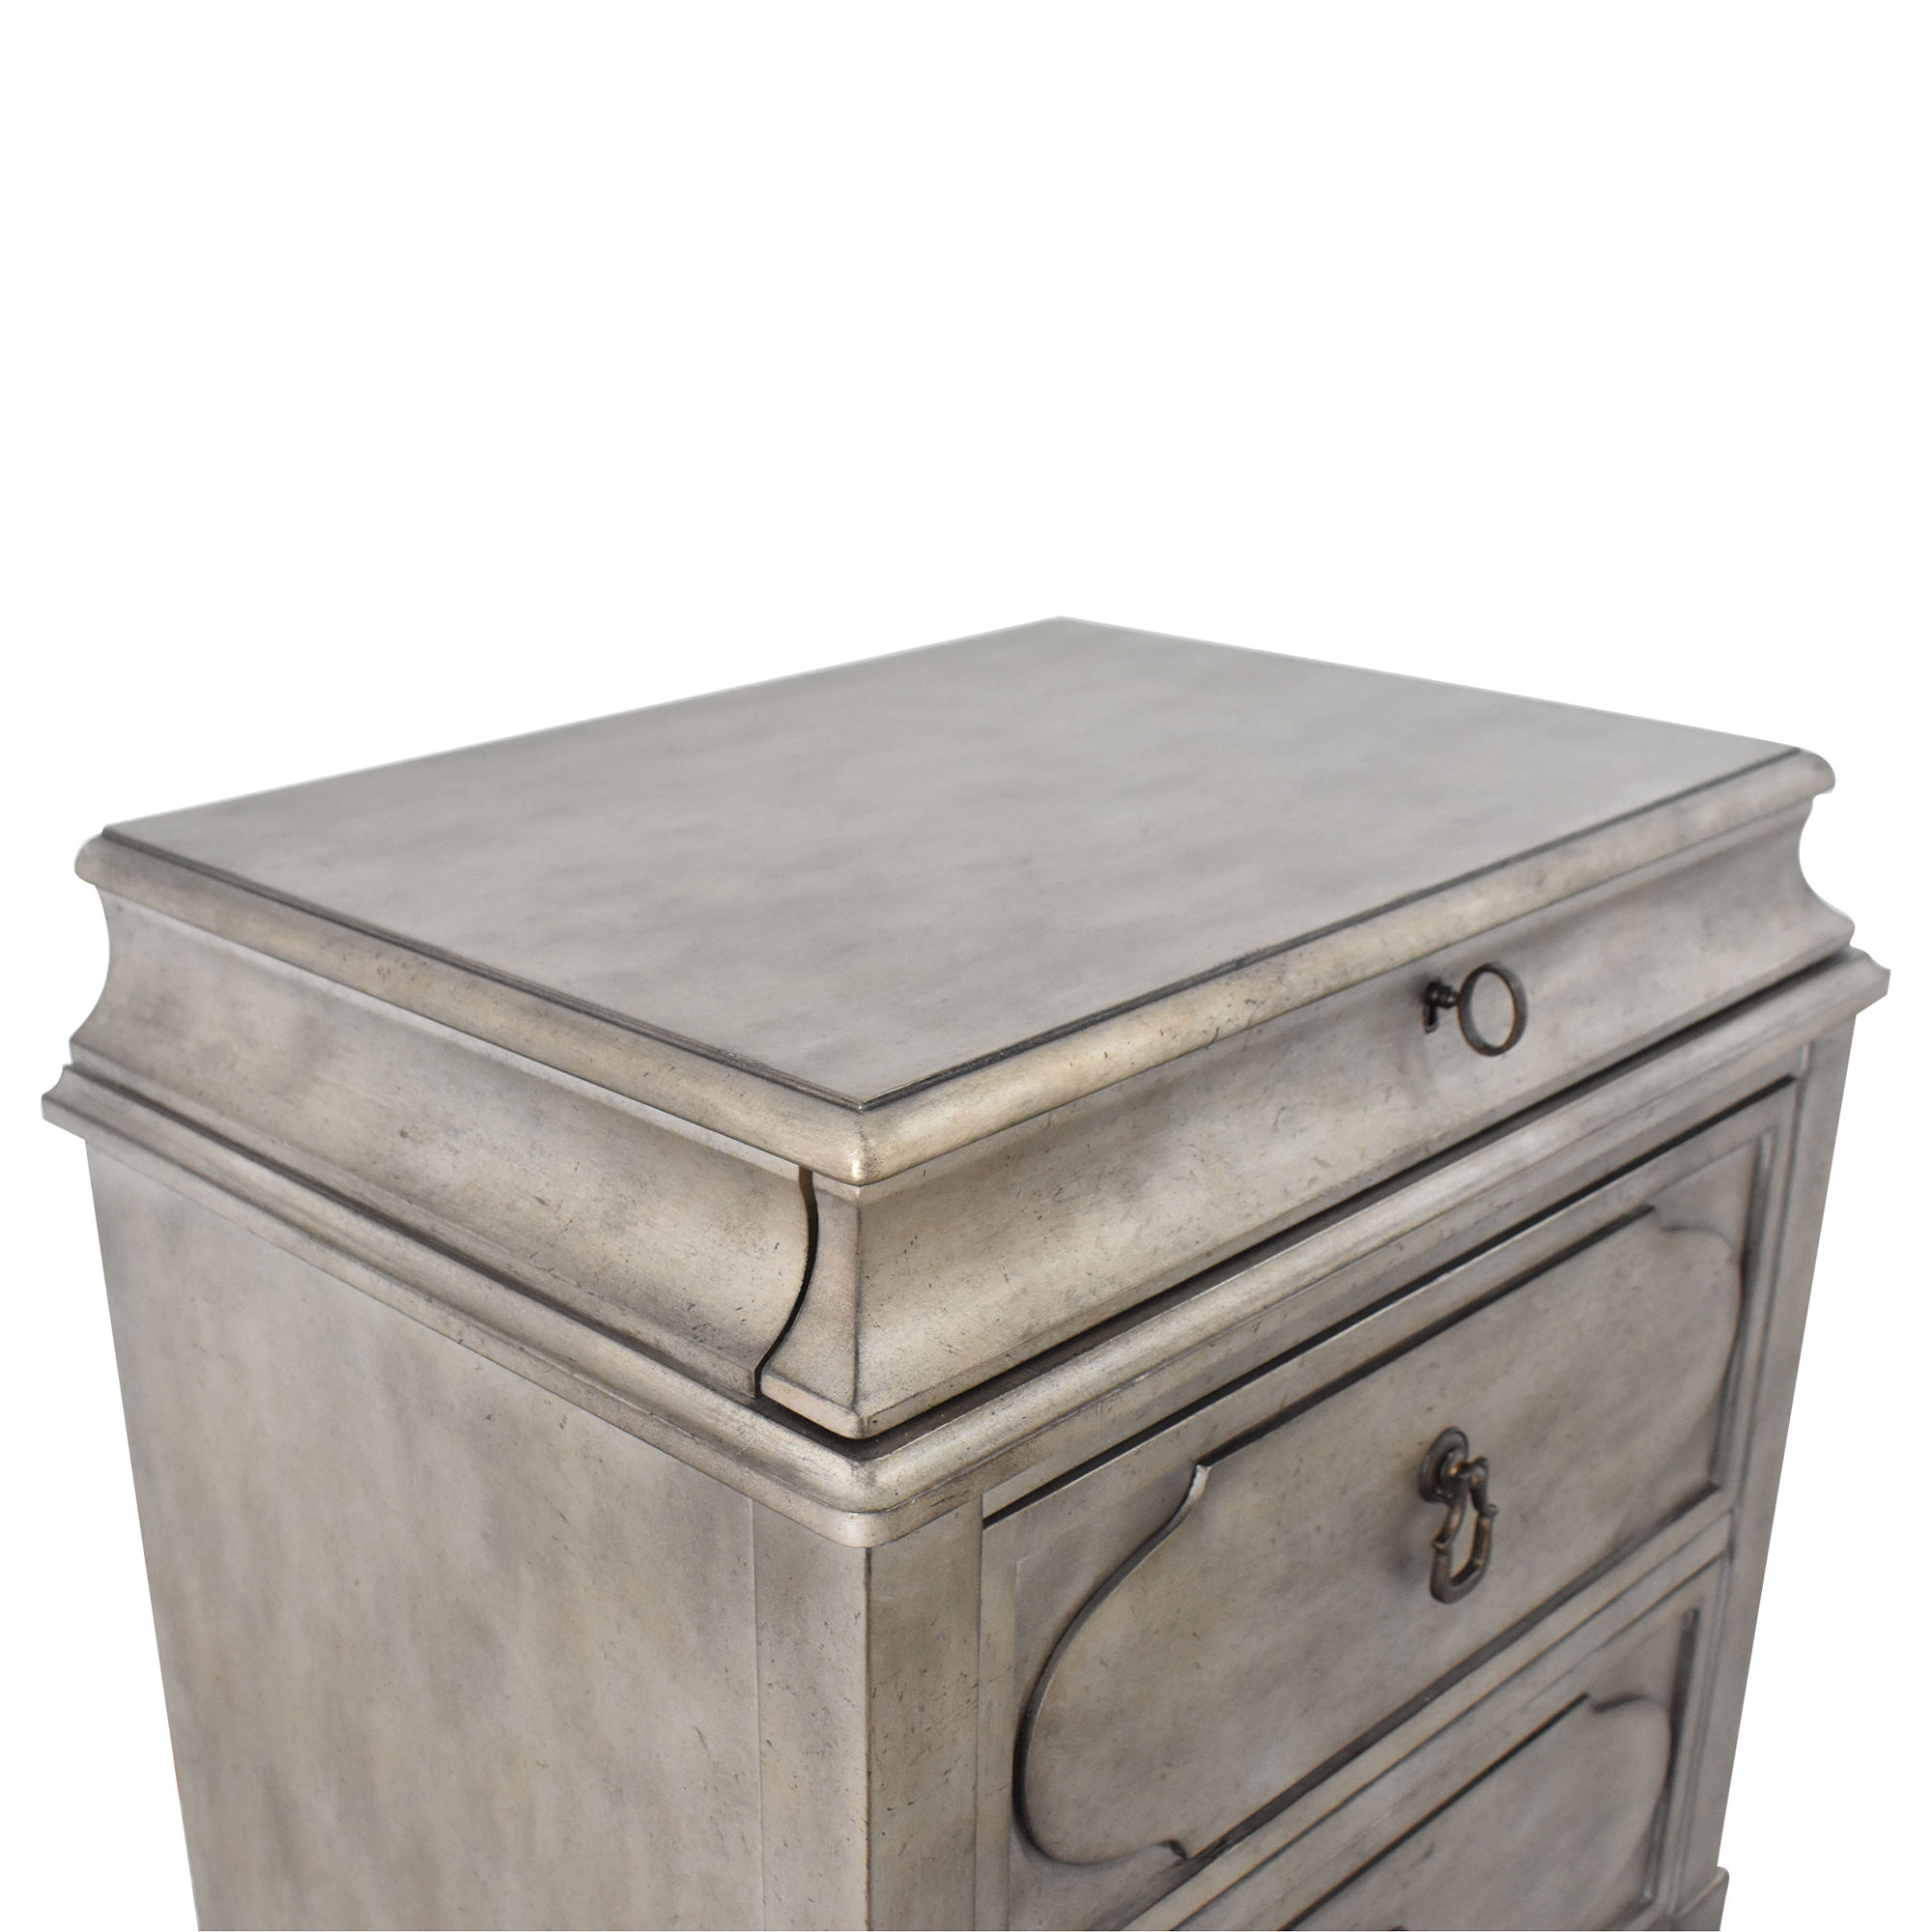 Universal Furniture Universal Furniture Cancale Bedside Chest second hand